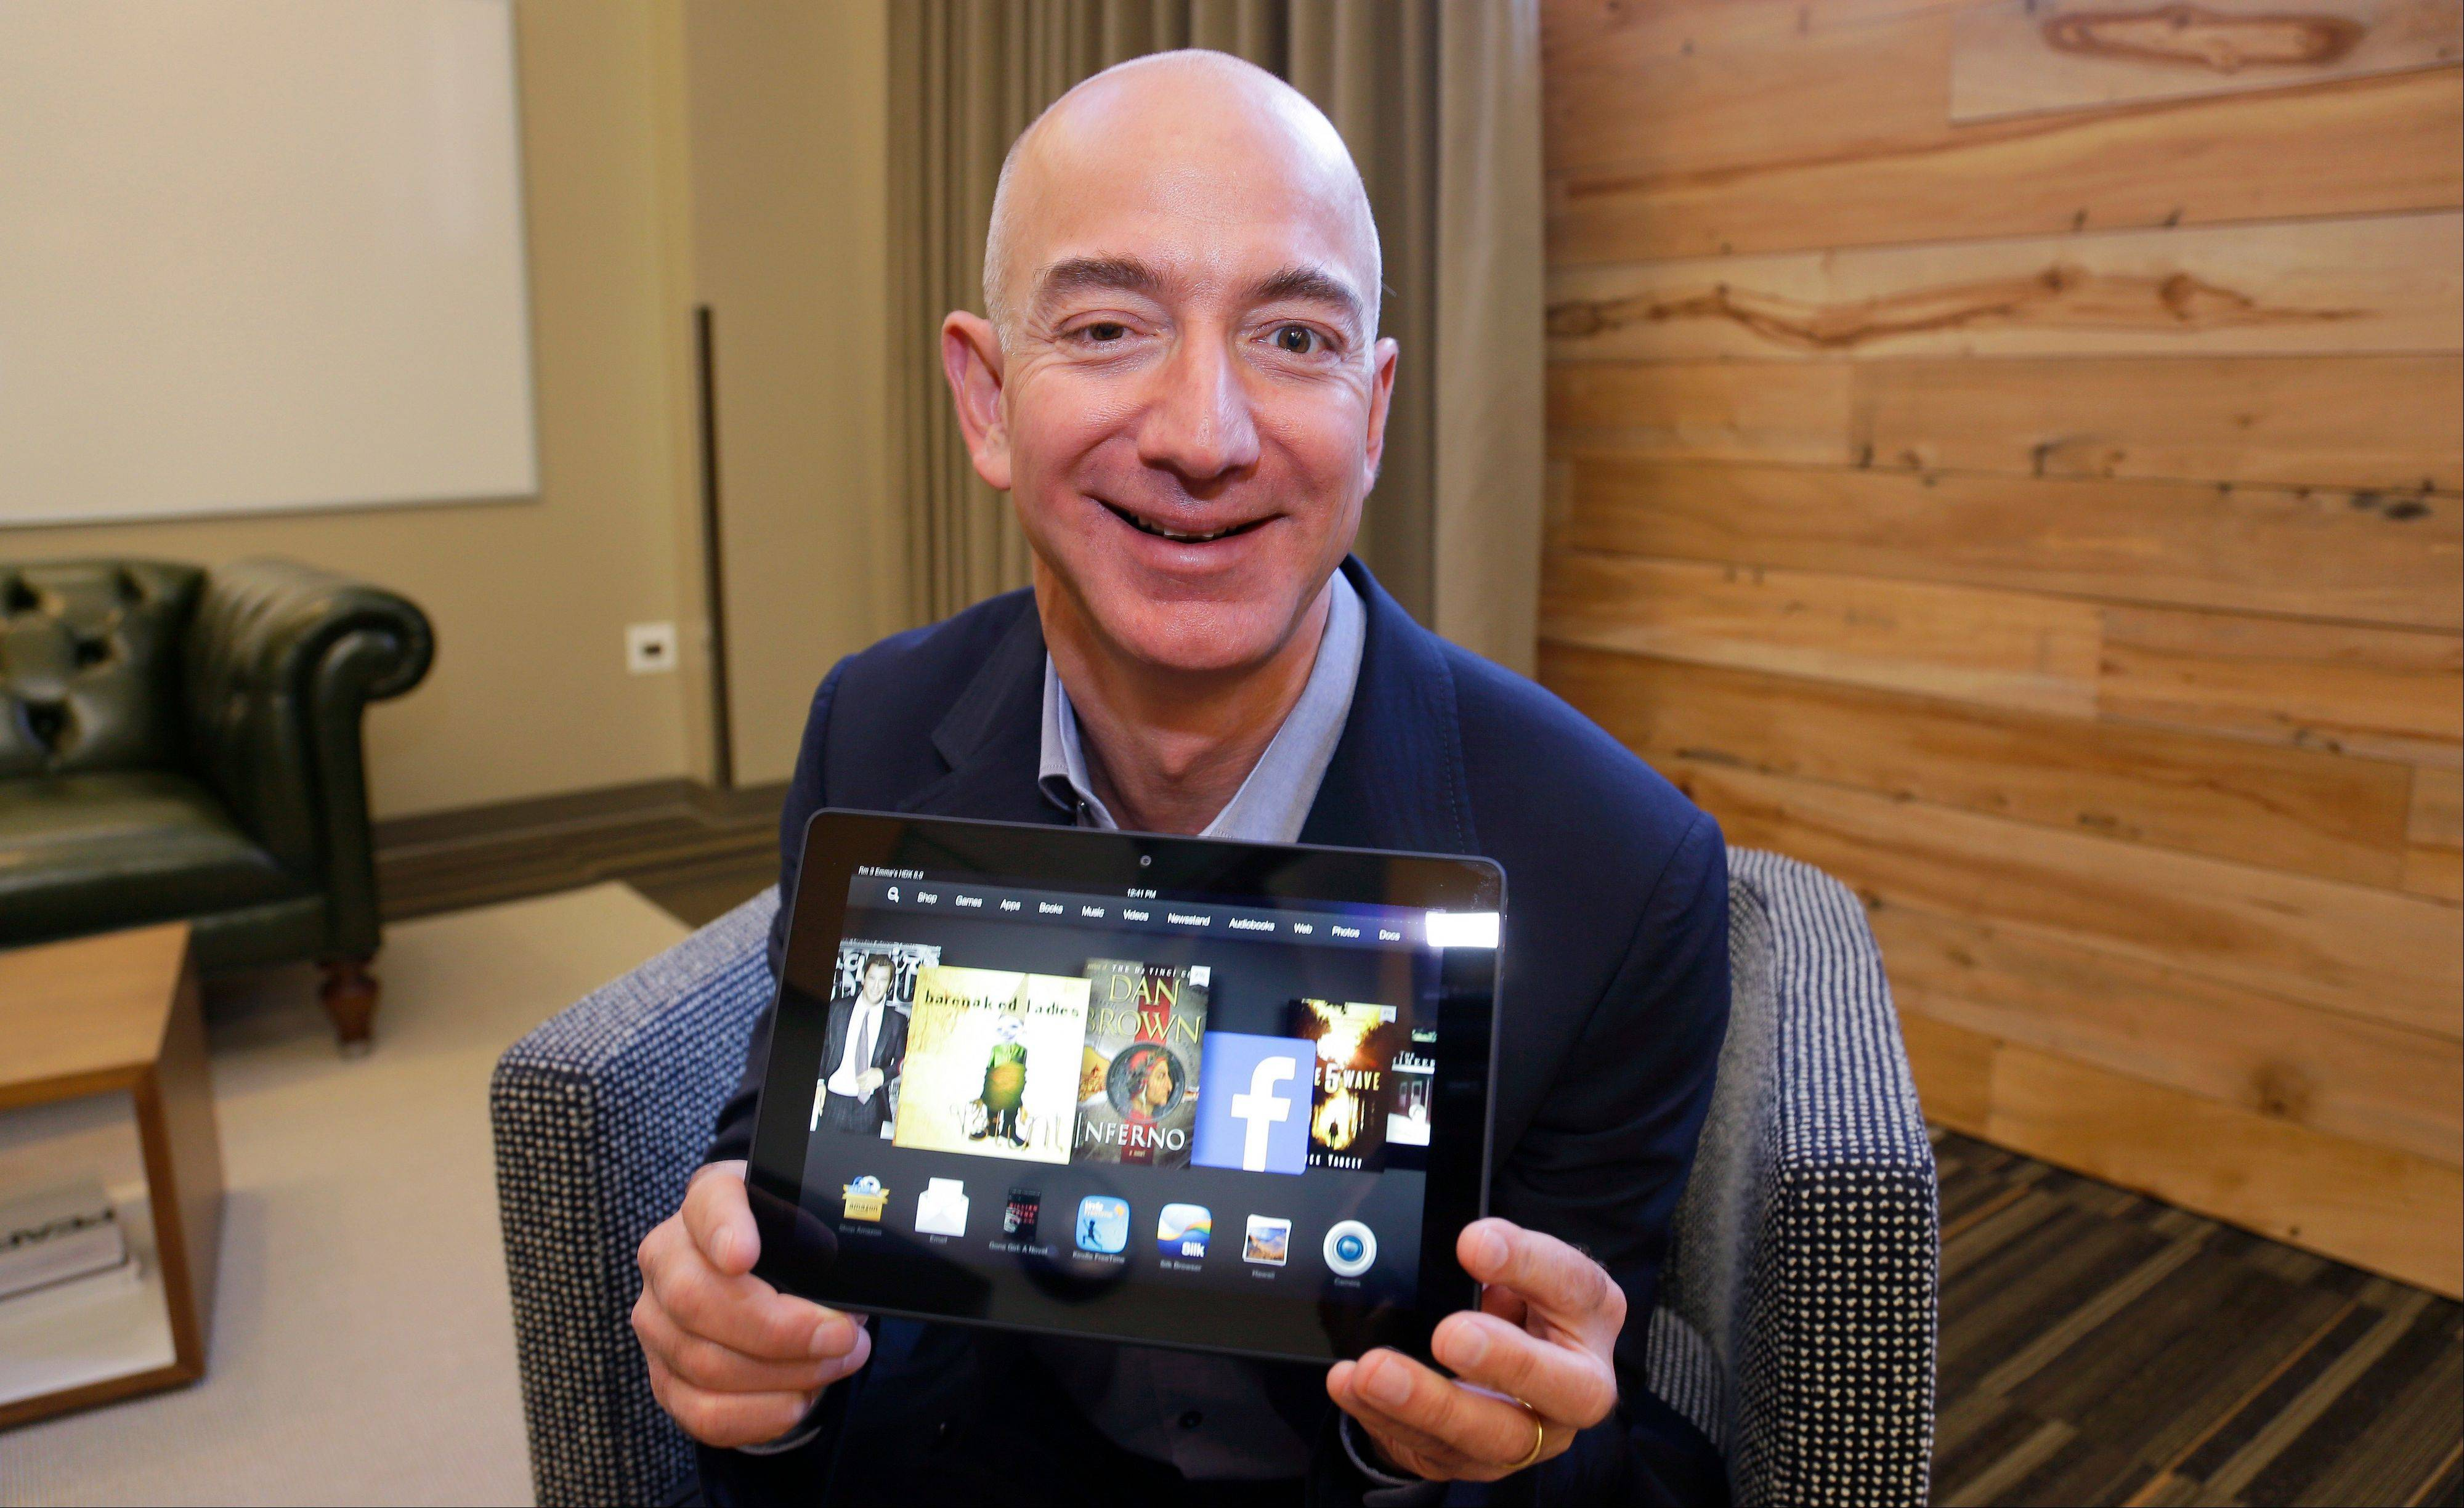 Jeff Bezos, CEO of Amazon.com, holds the 8.9-inch version of the new Amazon Kindle HDX tablet computer in Seattle. Amazon.com's revenue rose more than Wall Street expected in its fiscal third quarter, but the online retailer posted another loss due to ongoing investments in its business.